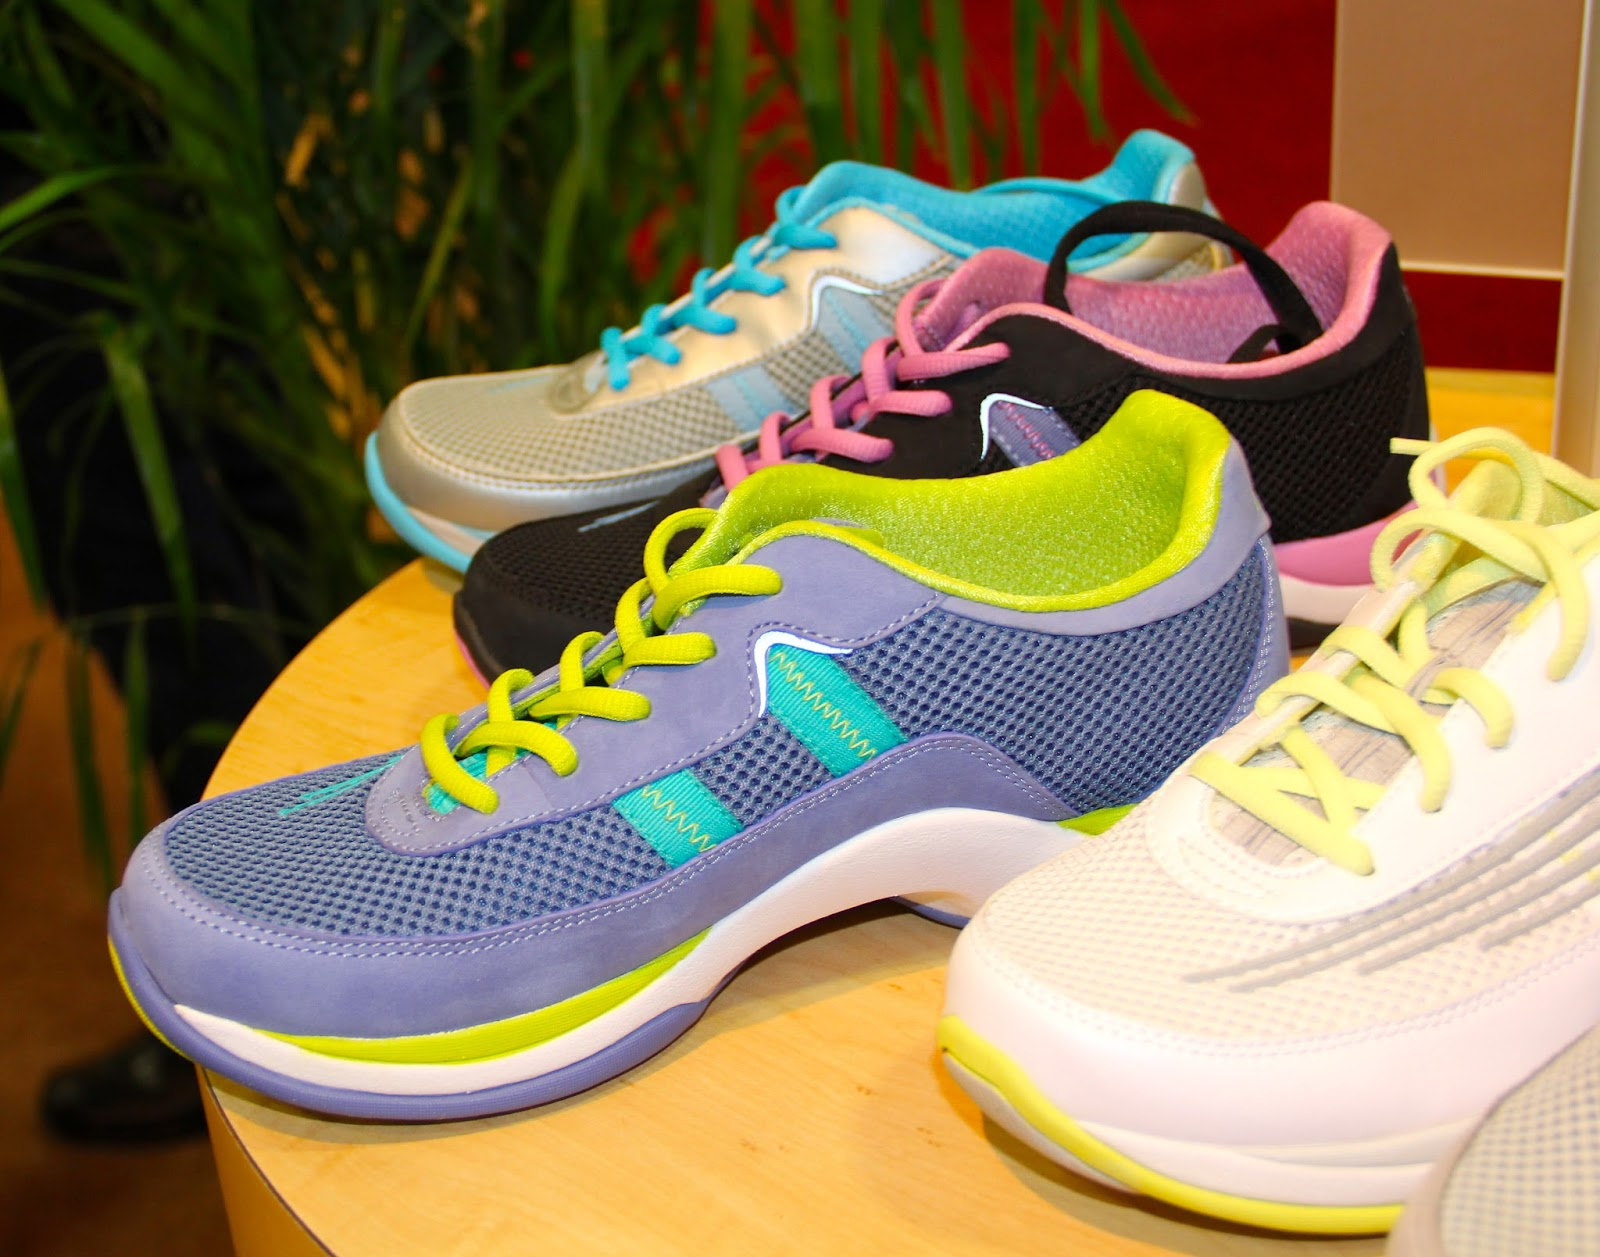 805f0273a8 The color options-blue nubuck w/lime green, black nubuck w/ pink-in  particular ---will have ladies keeping these walking shoes on all day.  sizes 36-43